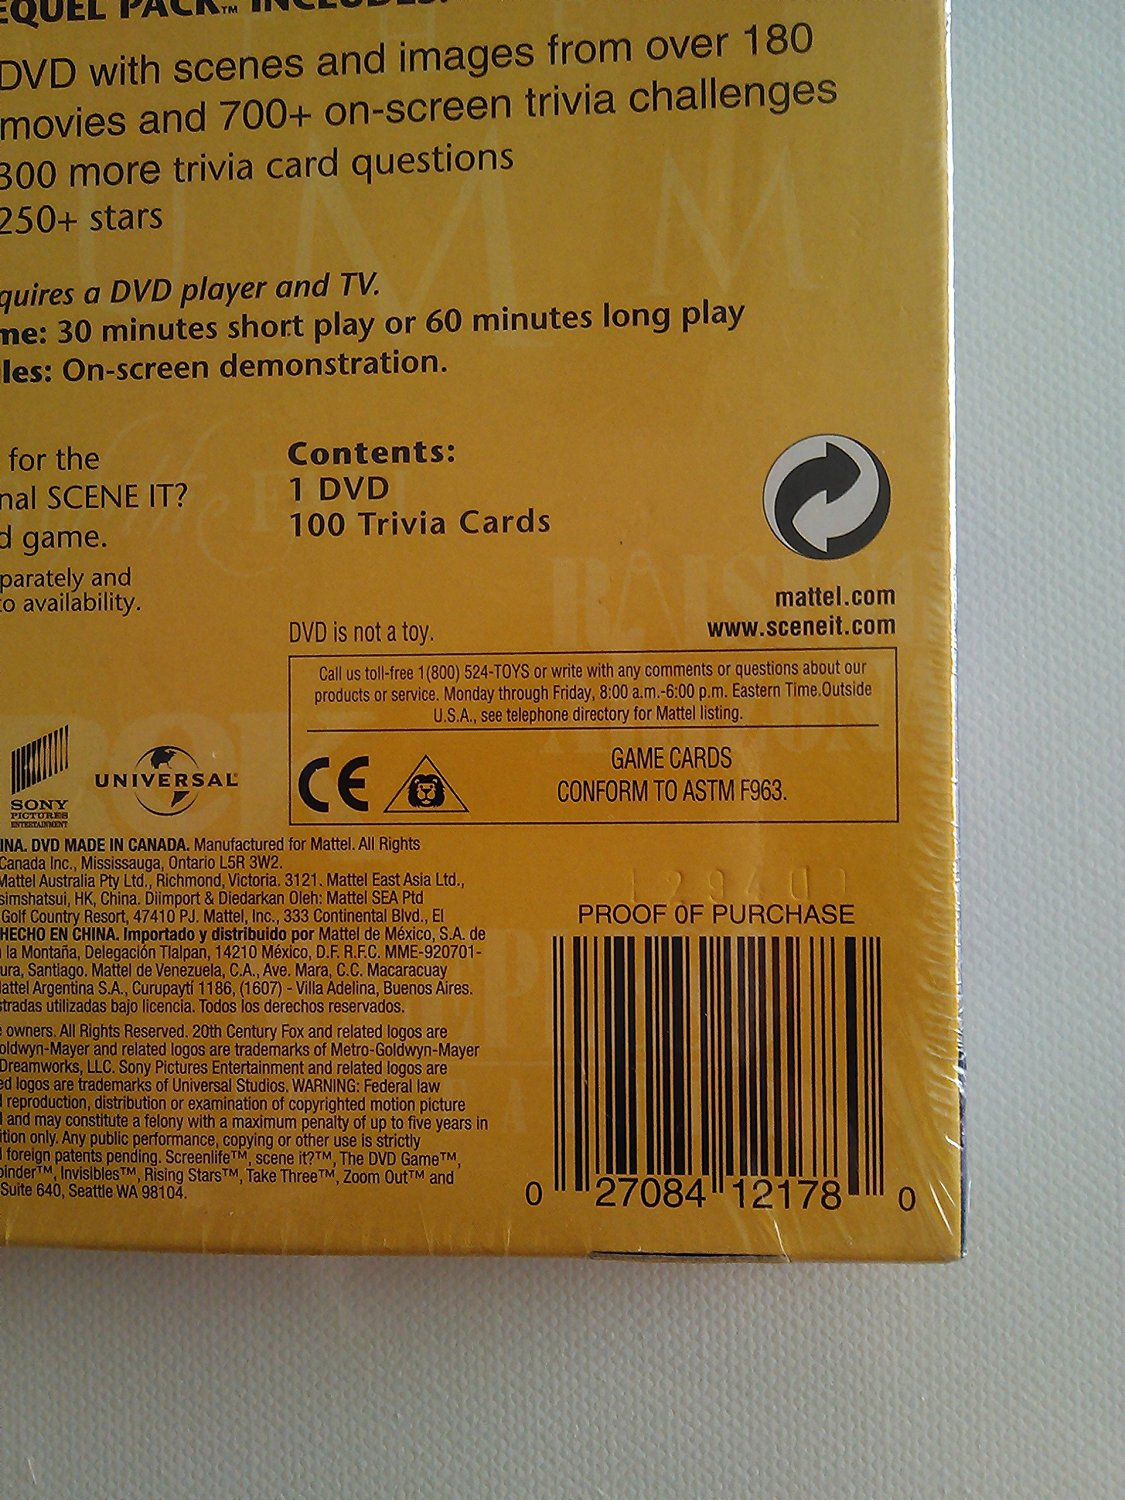 Toy / Game Scene It? The Dvd Game - Sequel Pack Movie Edition W/ 180 Movies & 700+ On Screen Trivia Challenges